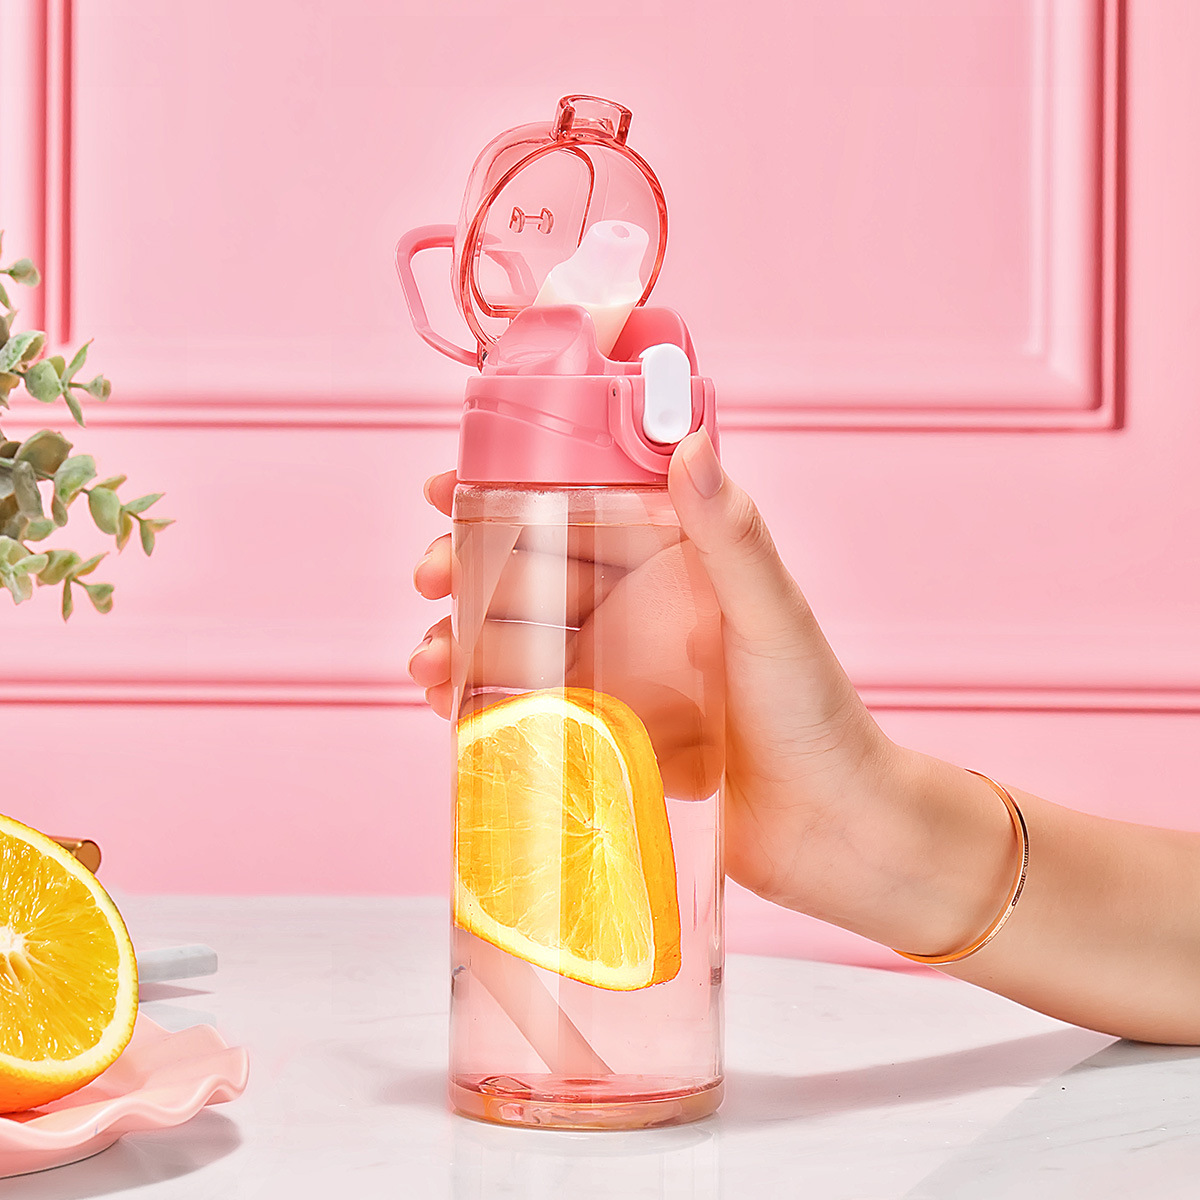 Relea Plastic Cup Outdoor Portable Sports Bottle Large Capacity Shatter-resistant Students Glass Children Cup With Straw